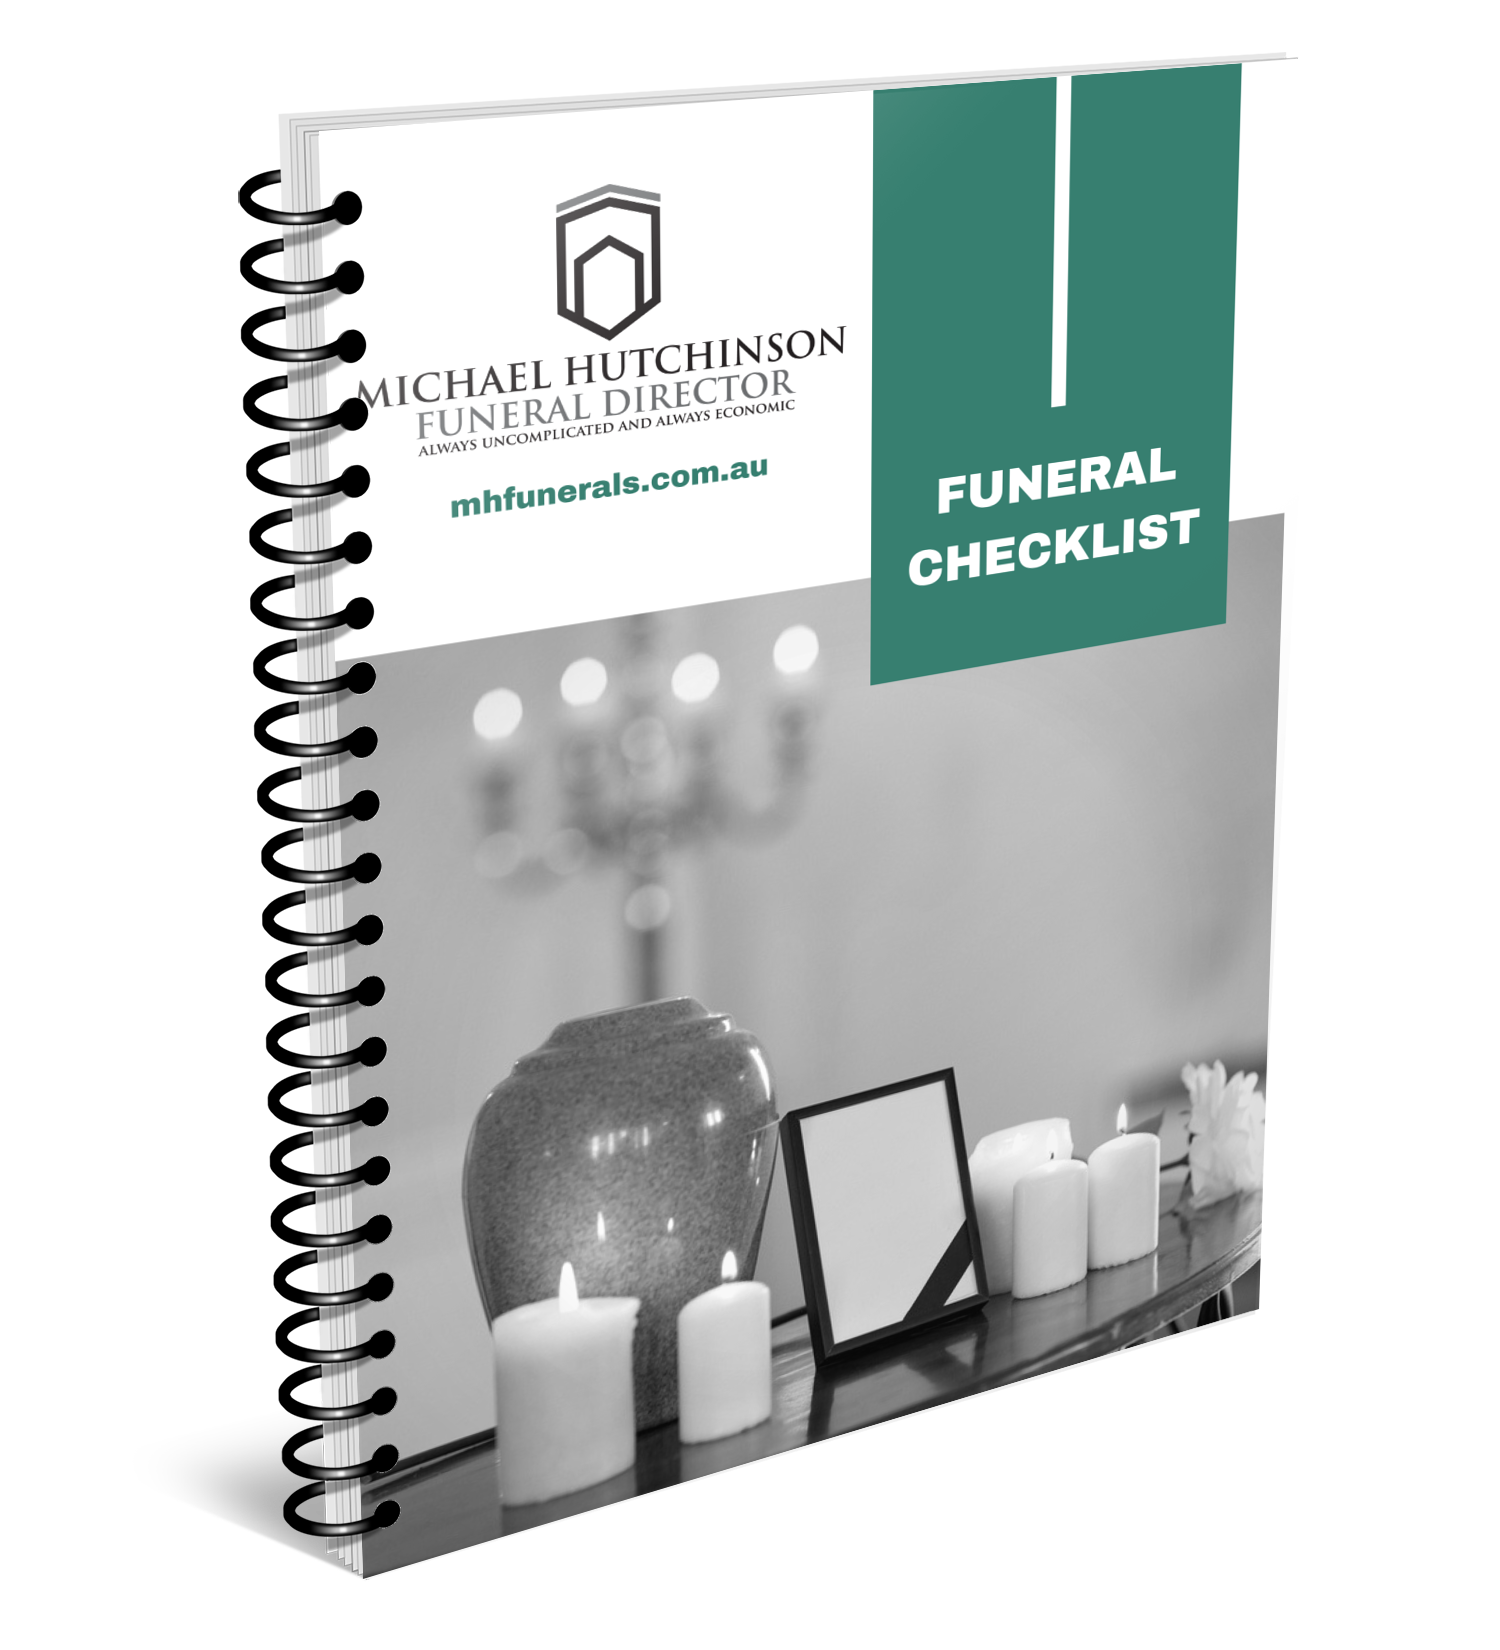 mh funerals preparing for a funeral checklist michael hutchinson